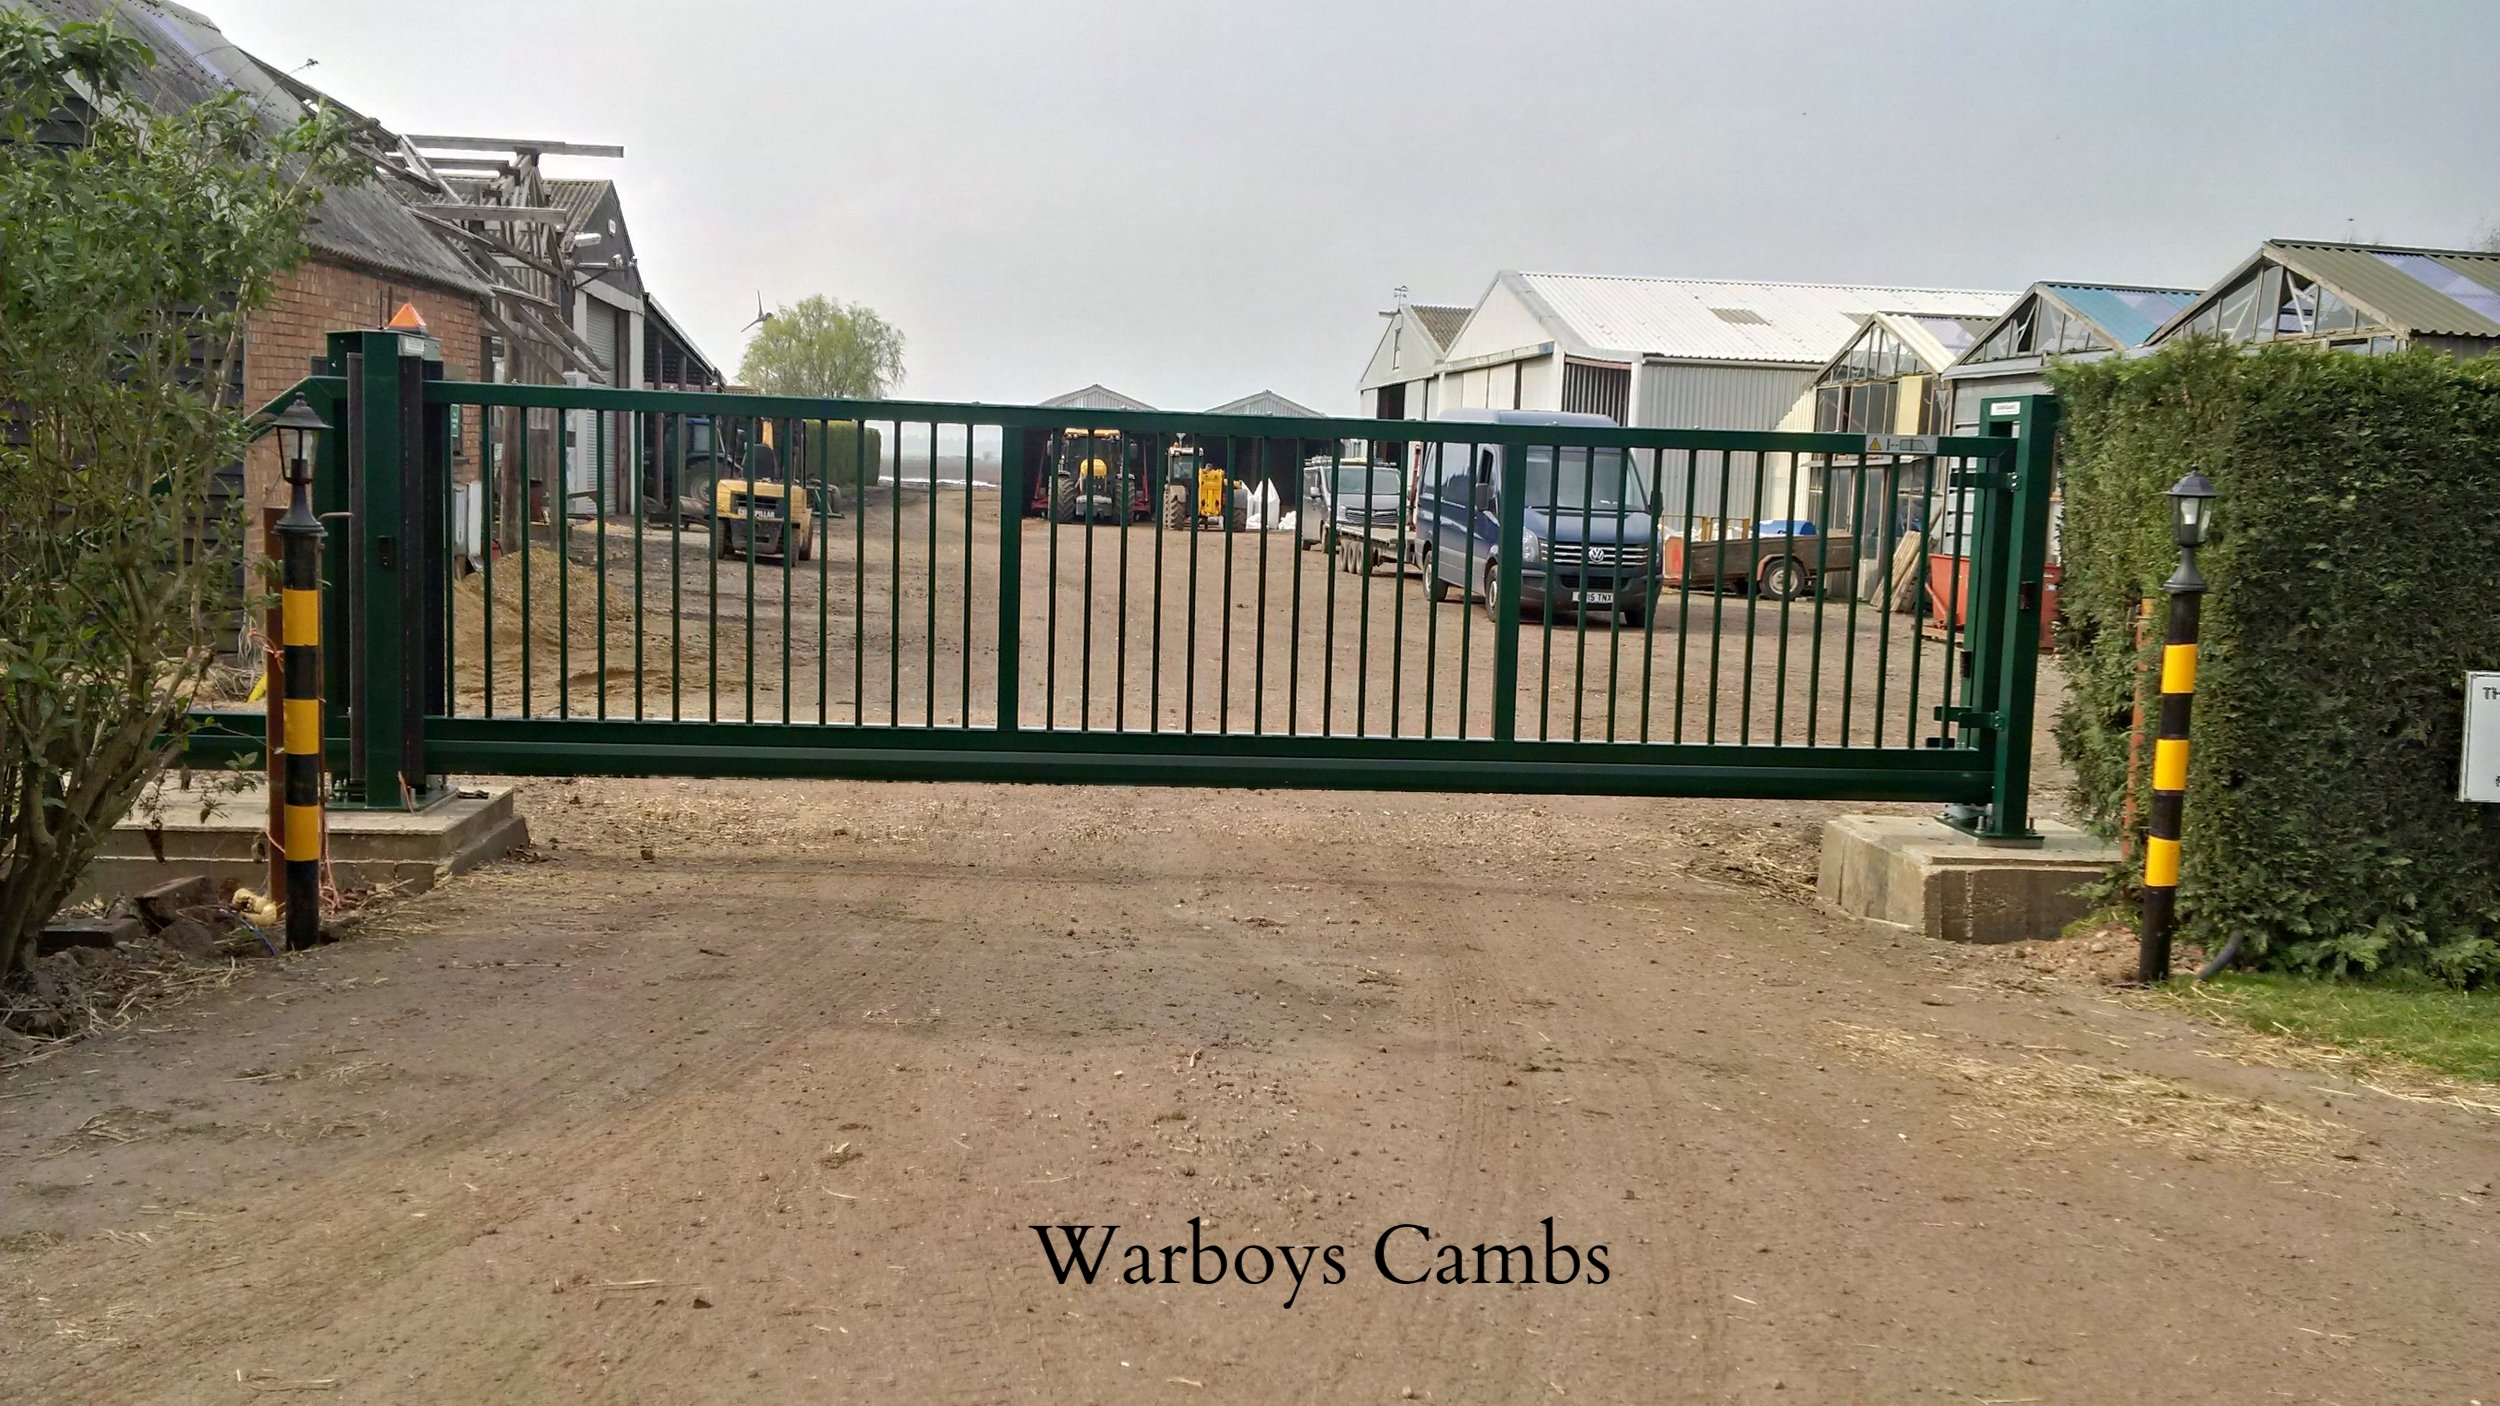 Copy of Warboys Cambs